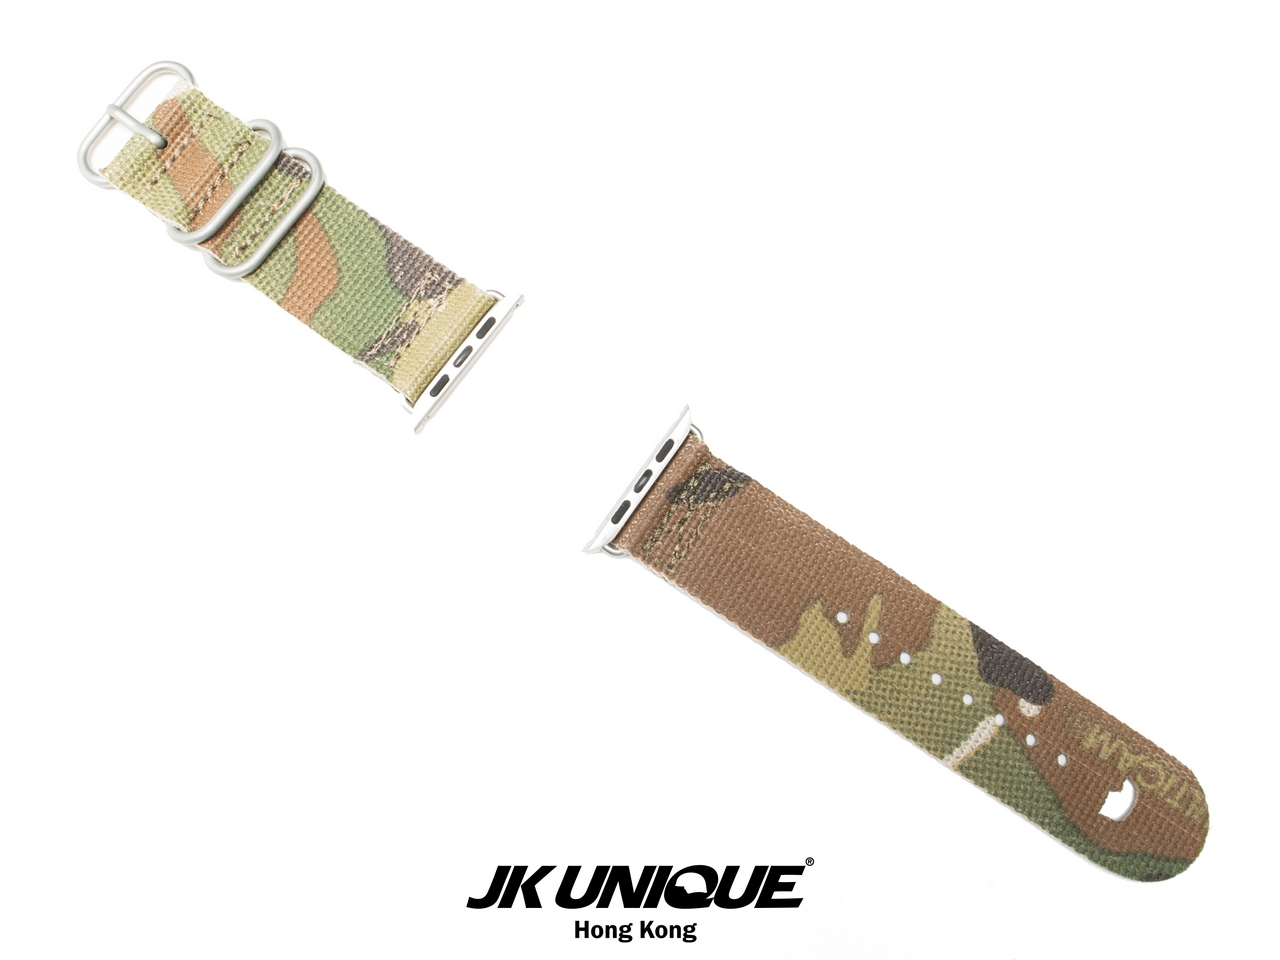 JK-UNIQUE-CAMO-NATO-Apple-Watch-Strap-42mm-SV-Multicam-1 (1280).jpg